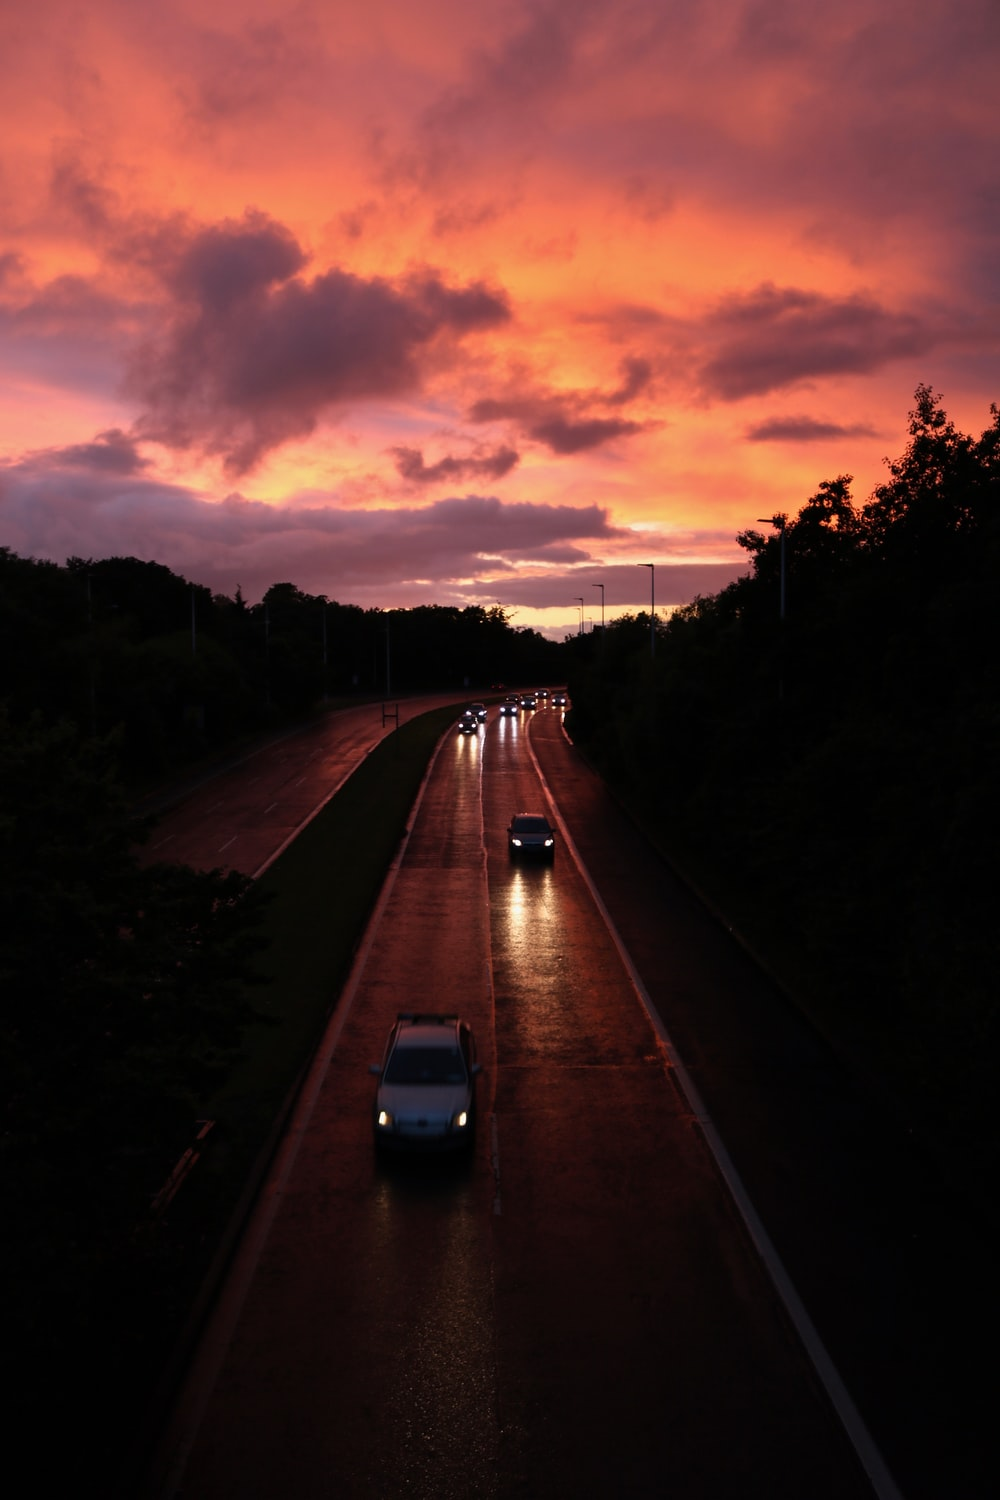 several vehicles on the road during sunset